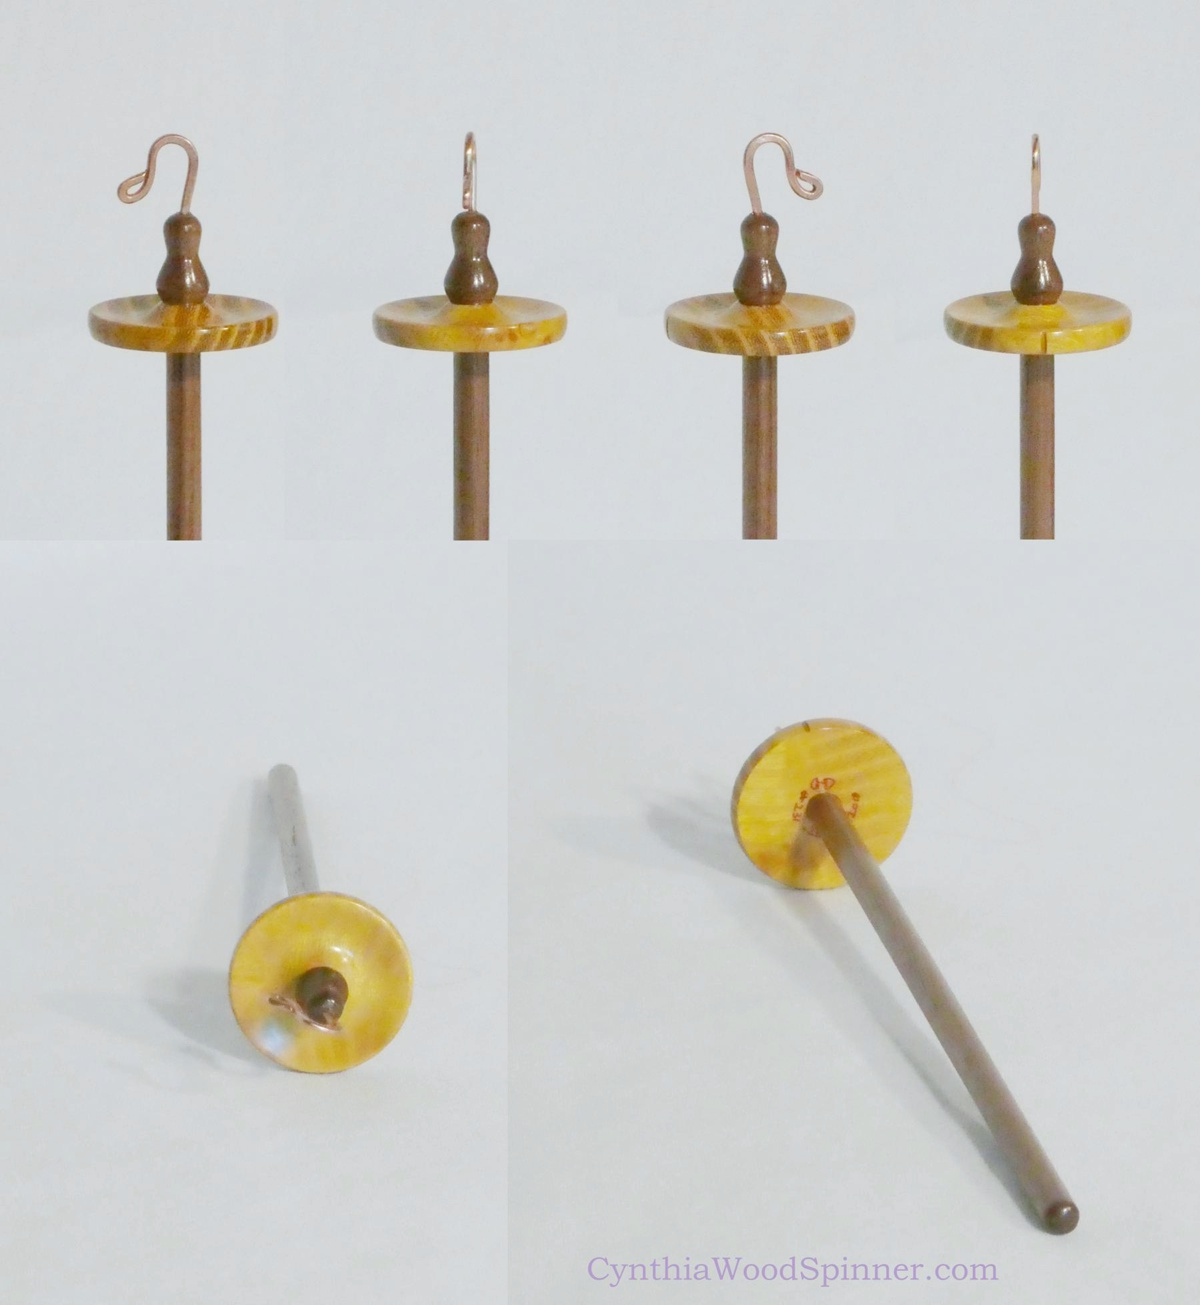 Osage Orange and Walnut wood tiny top whorl drop spindle for spinning lace handmade by Cynthia D. Haney>